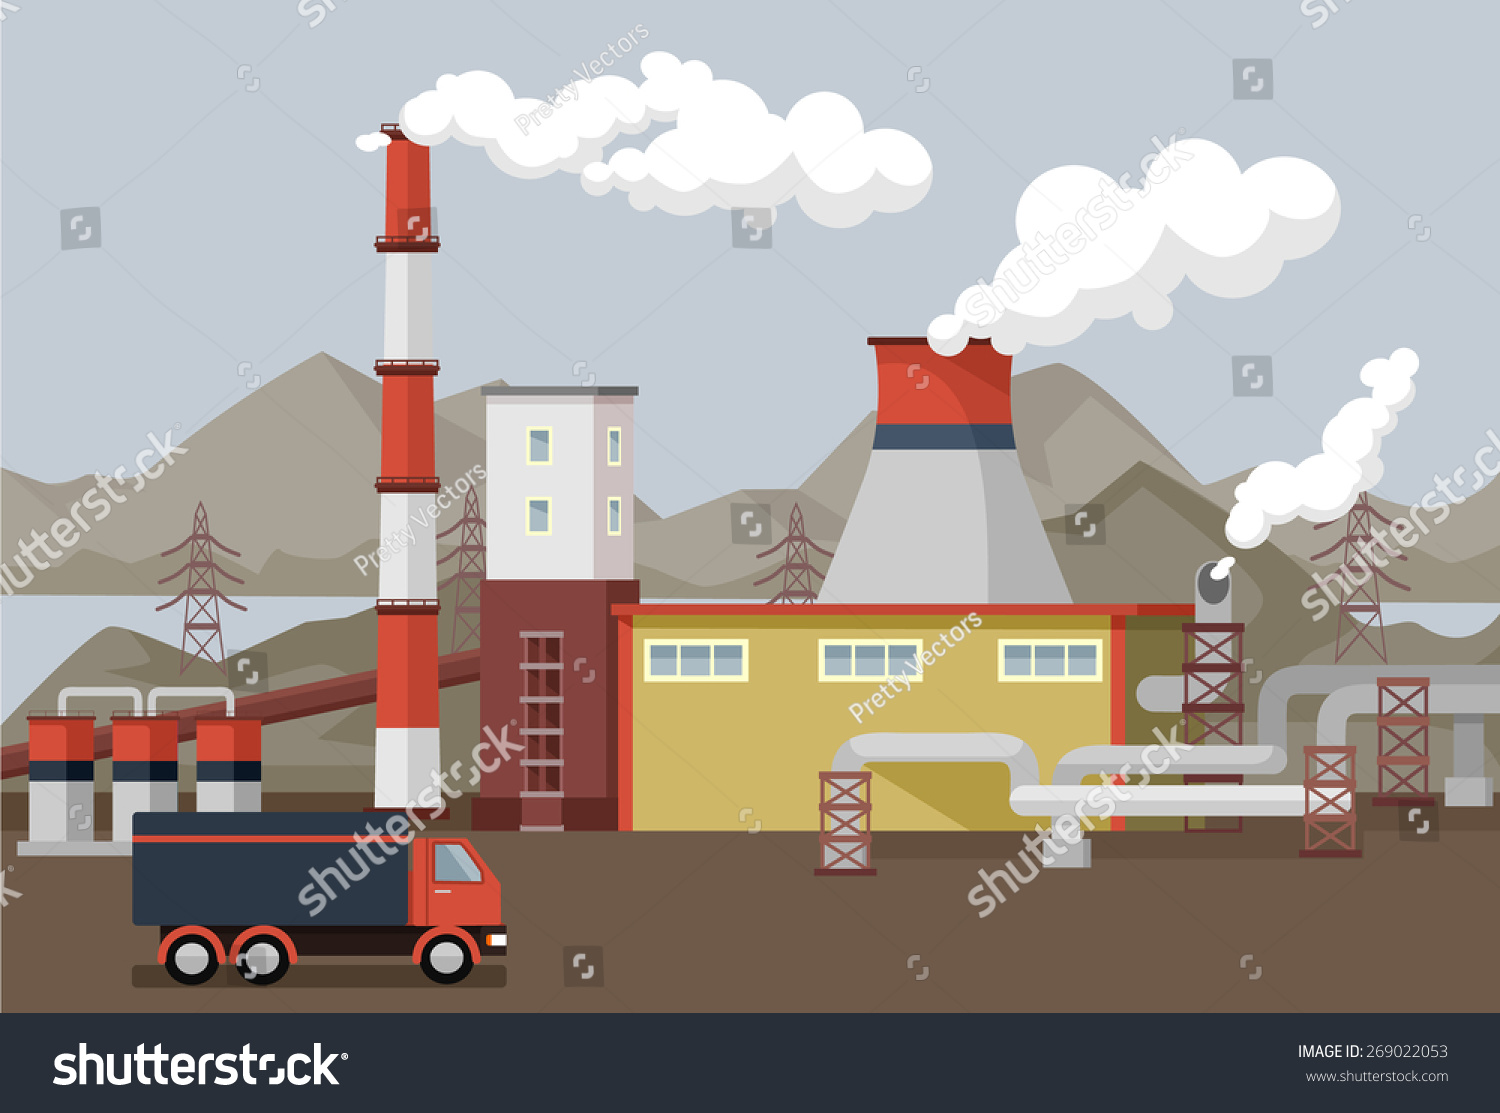 Vector Flat Factory Illustration Stock Vector 269022053 ...